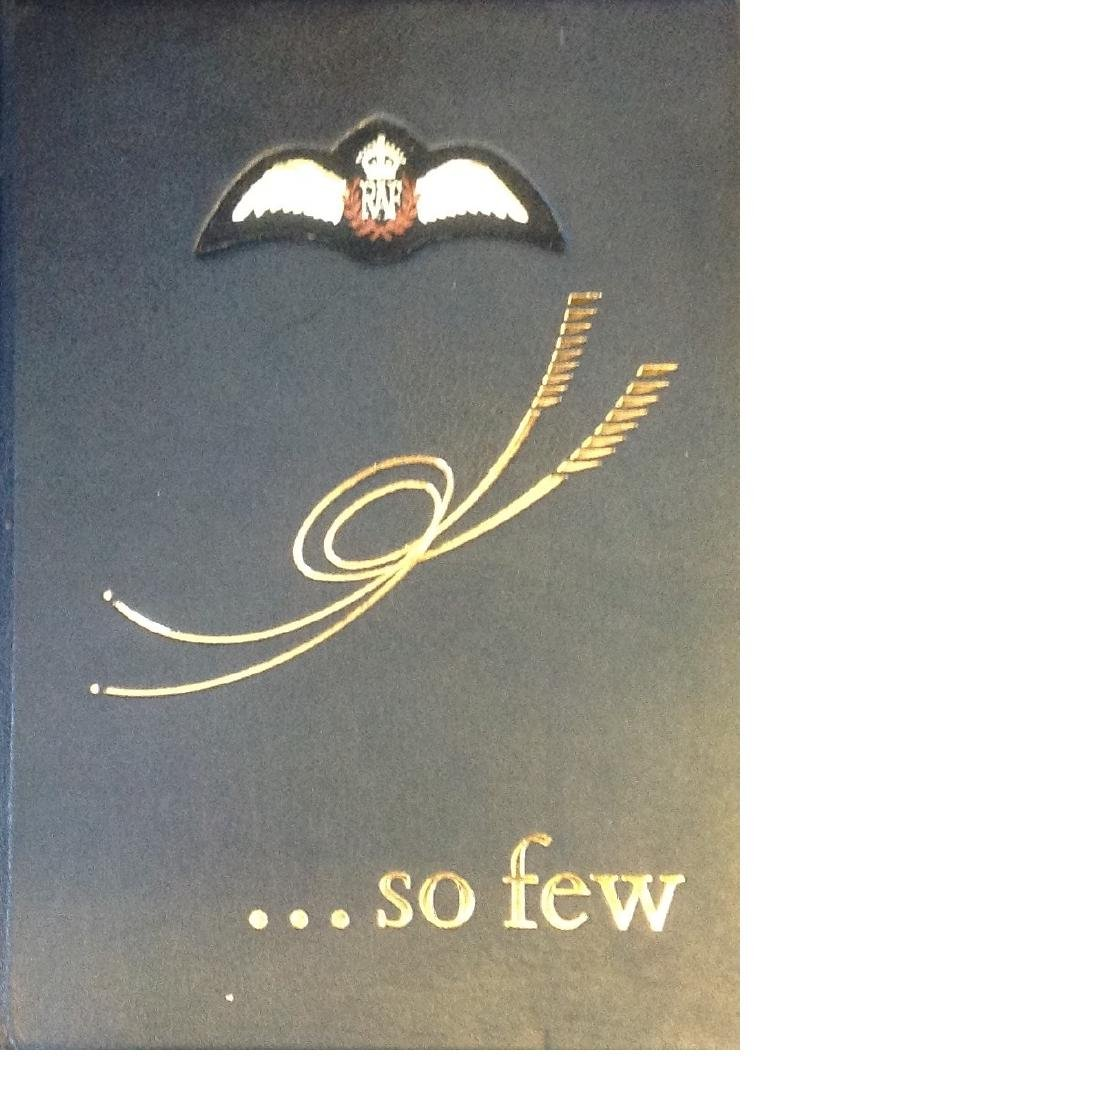 Battle of Britain so few multiple signed rare book. A